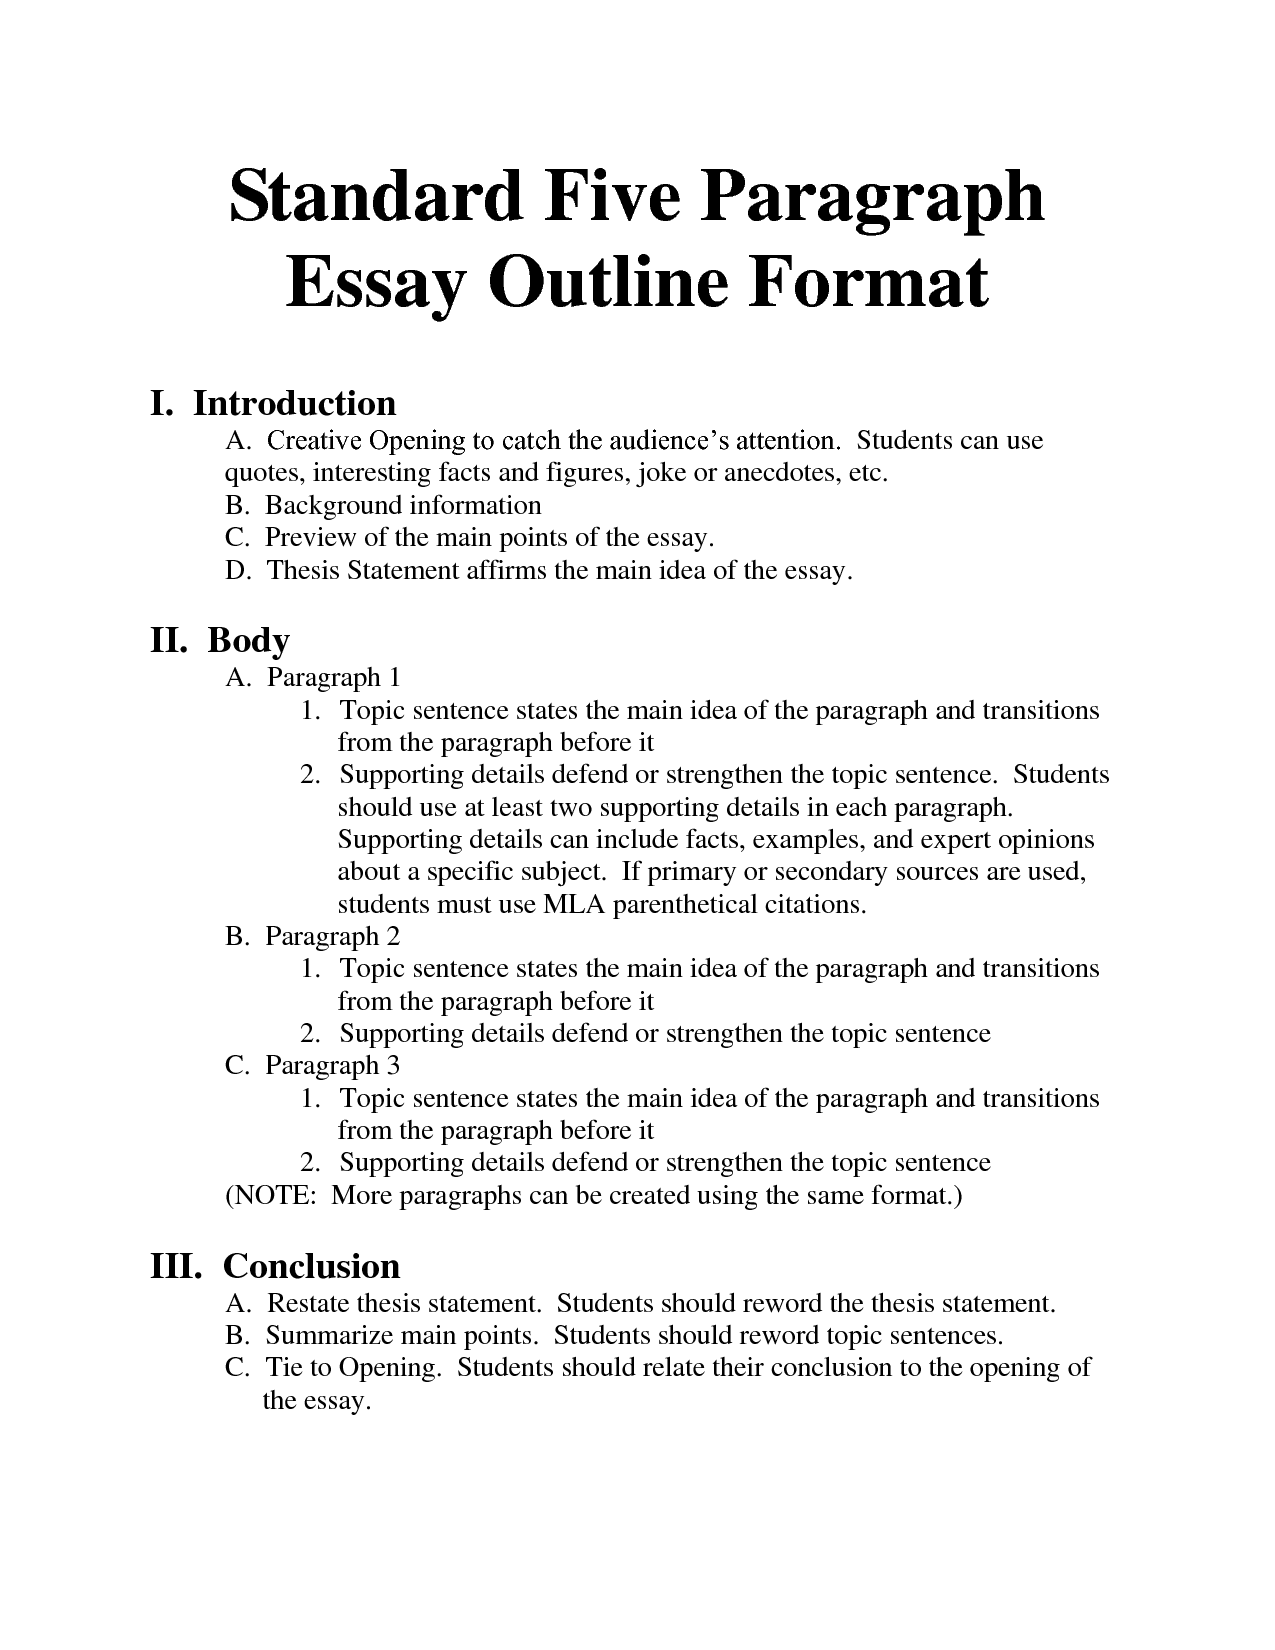 outline format essay - Ideal.vistalist.co